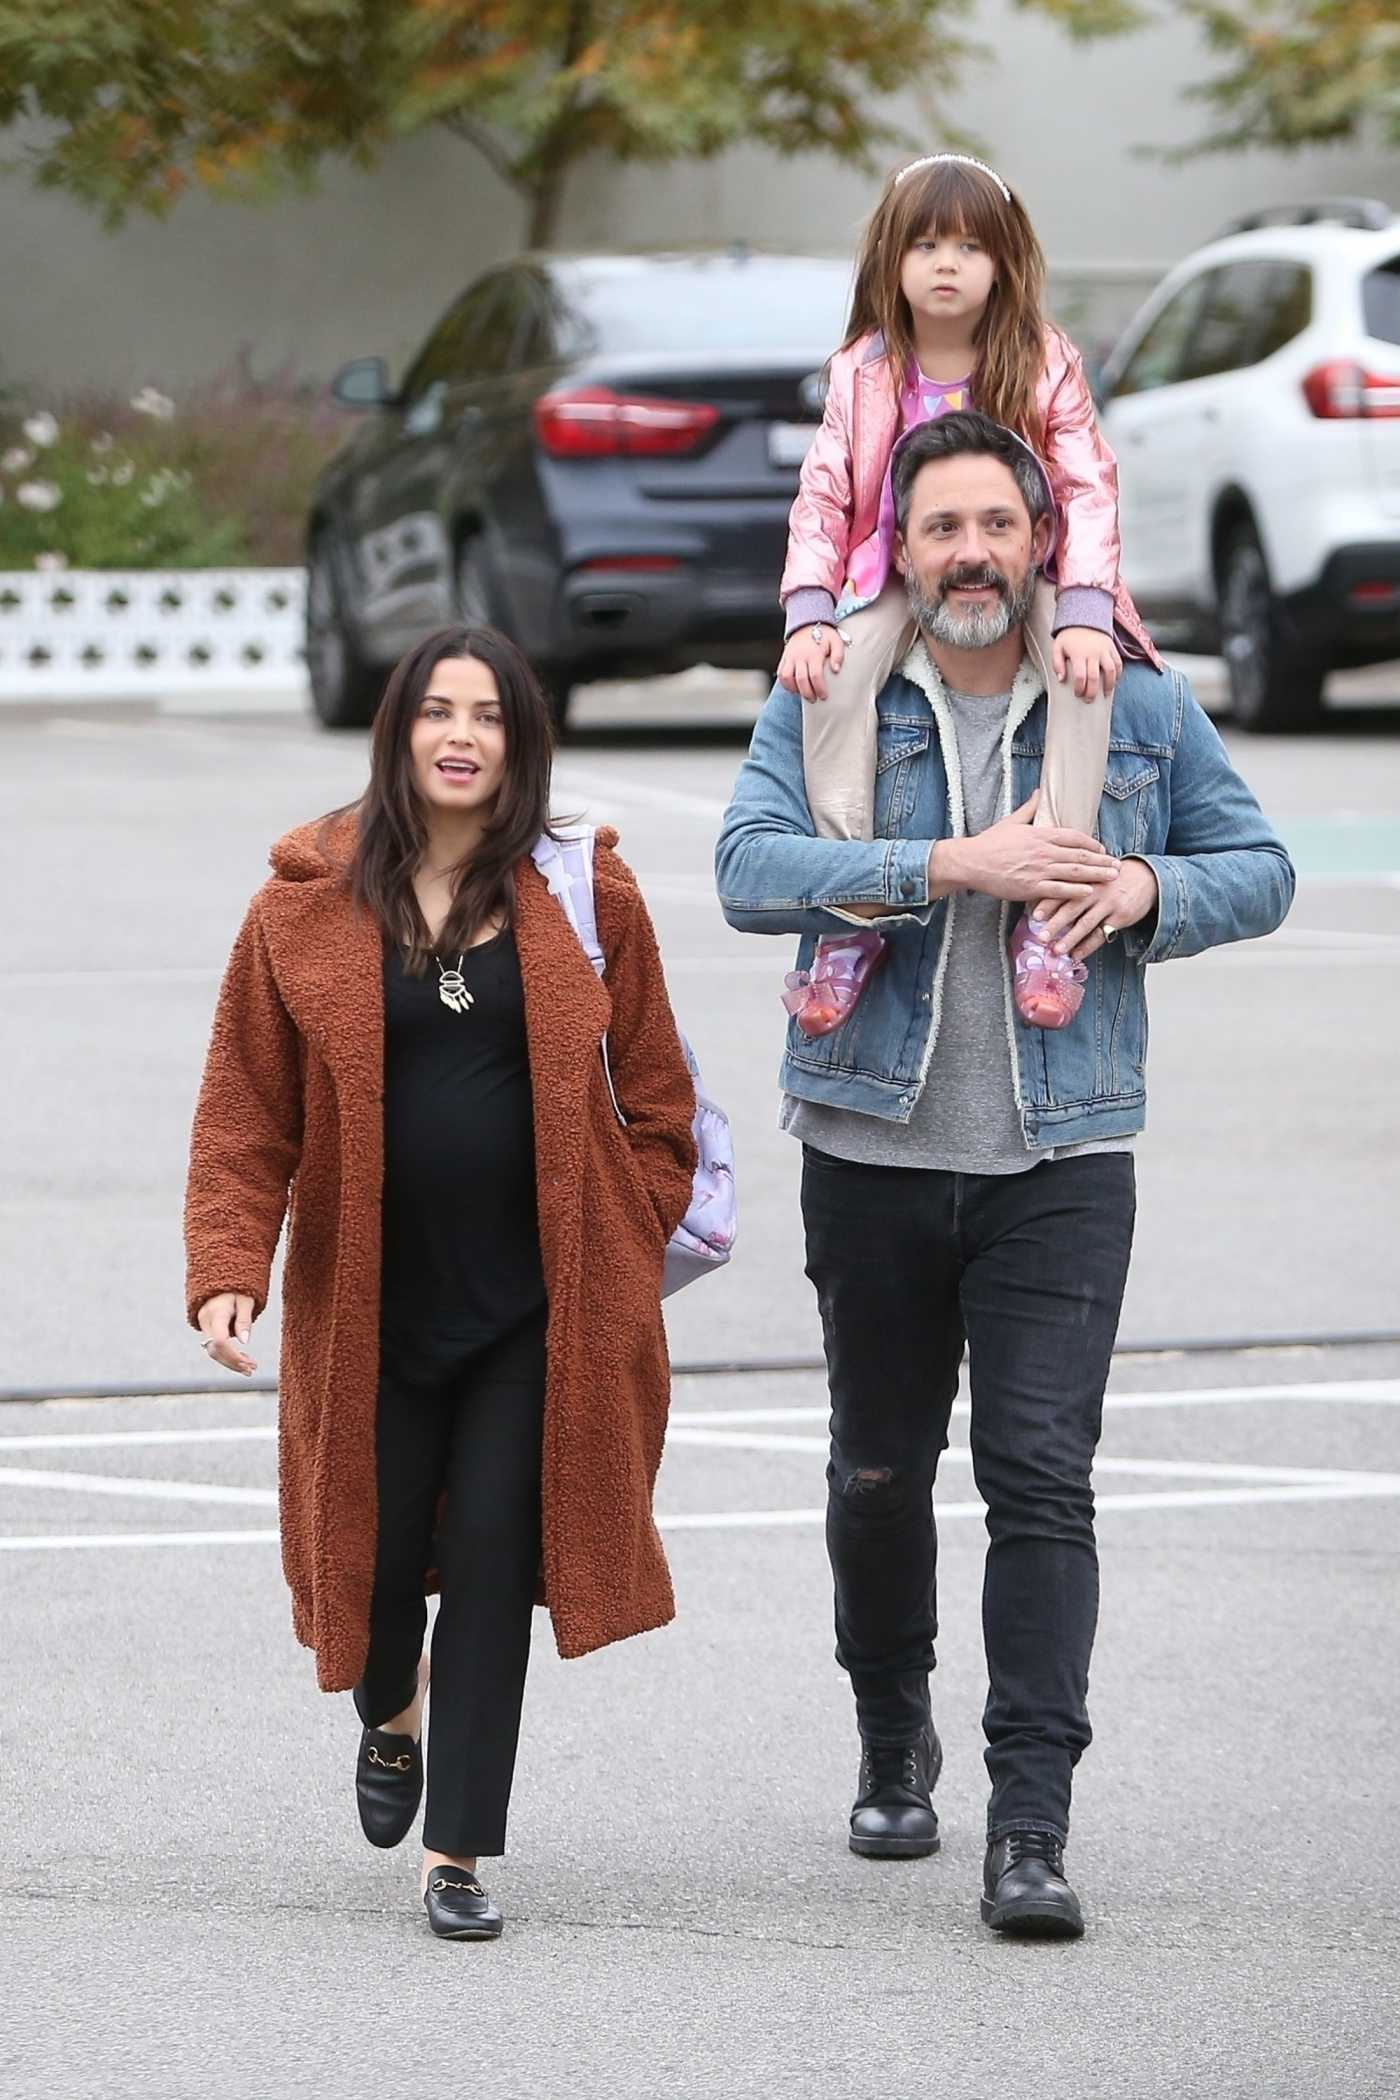 Jenna Dewan in a Brown Fur Coat Was Seen Out with Her Boyfriend and Daughter in Los Angeles 12/03/2019